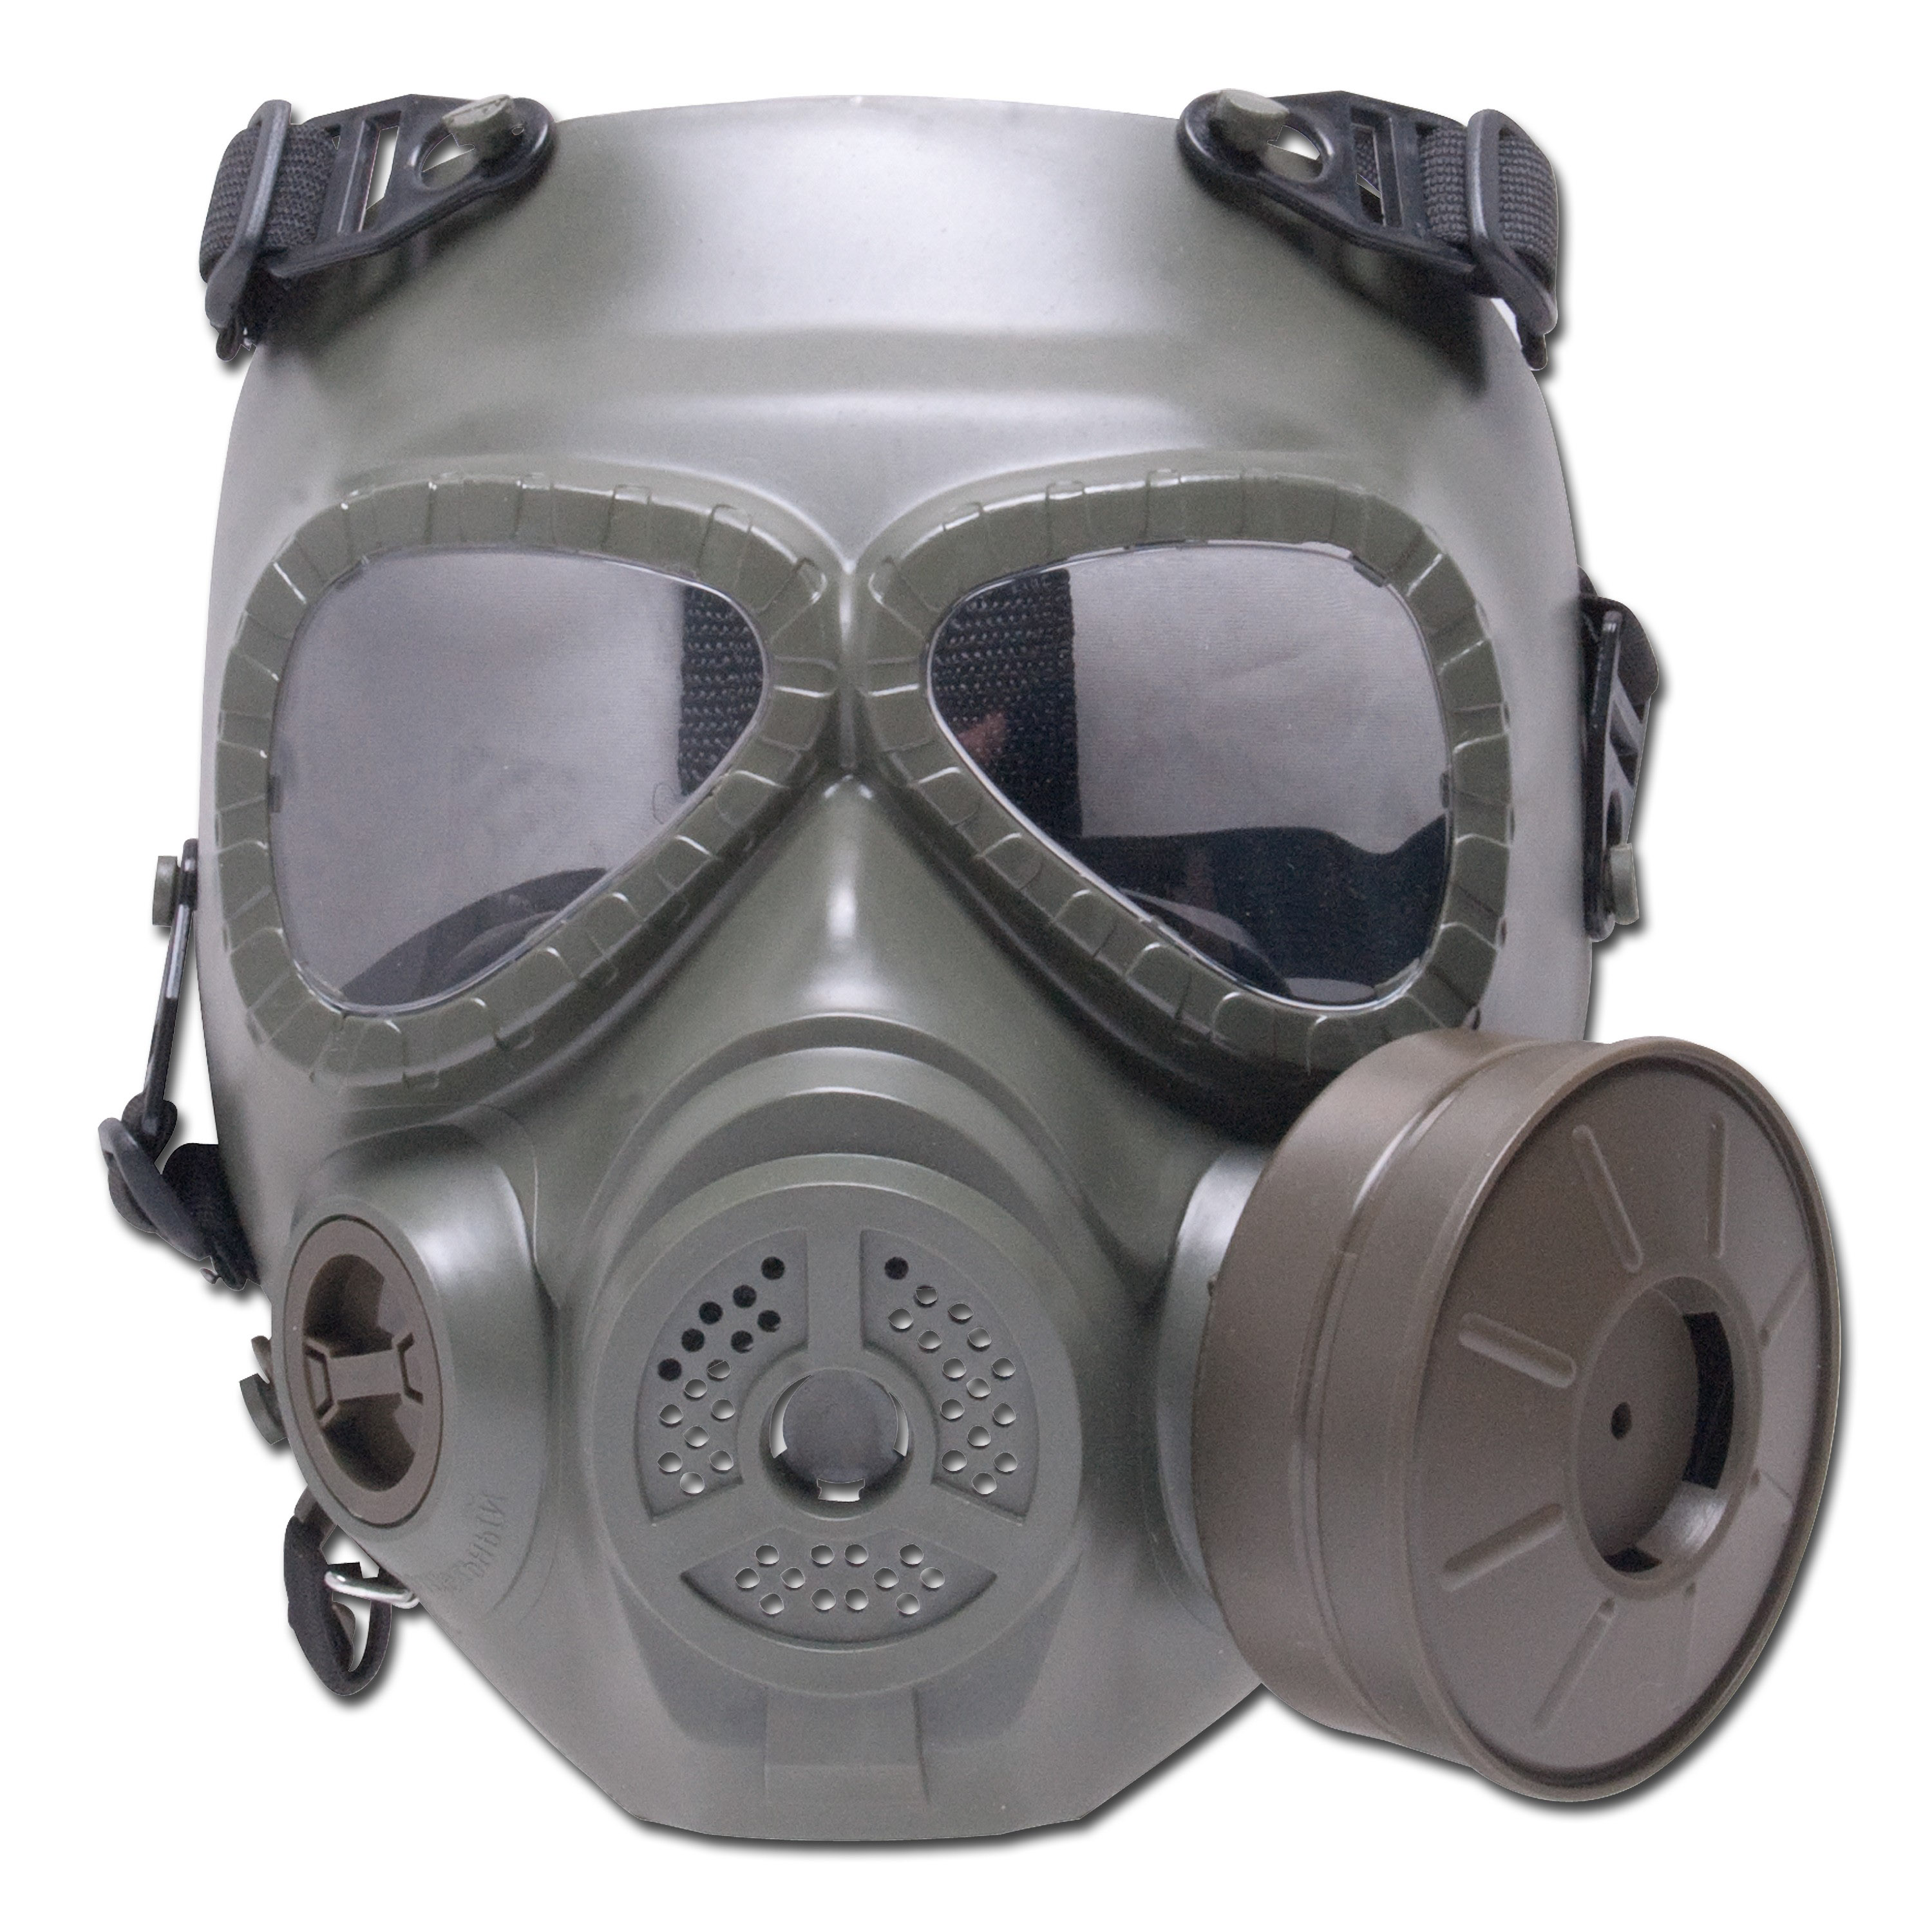 Decoration Gas Mask GSG M04